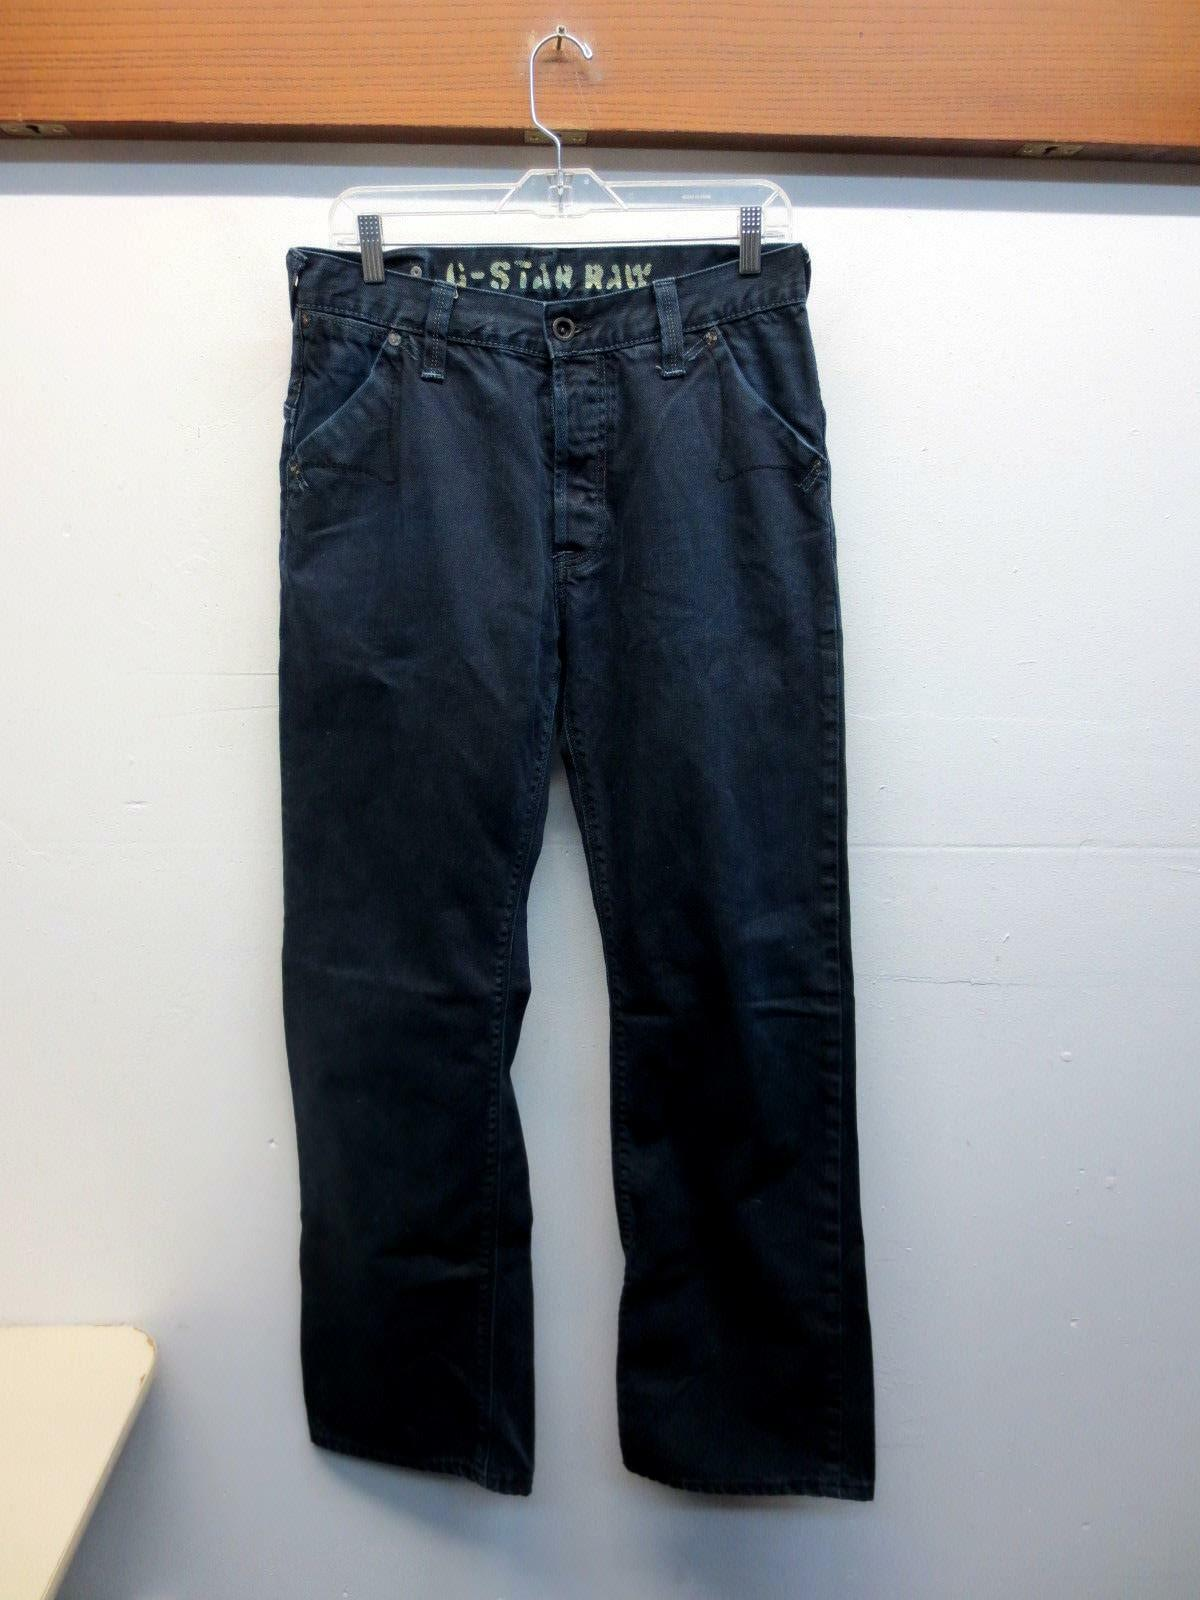 G. Star  Raw Dark bluee Men's Jeans 3301 relaxed boot , Size 31x34  meas. 33x33